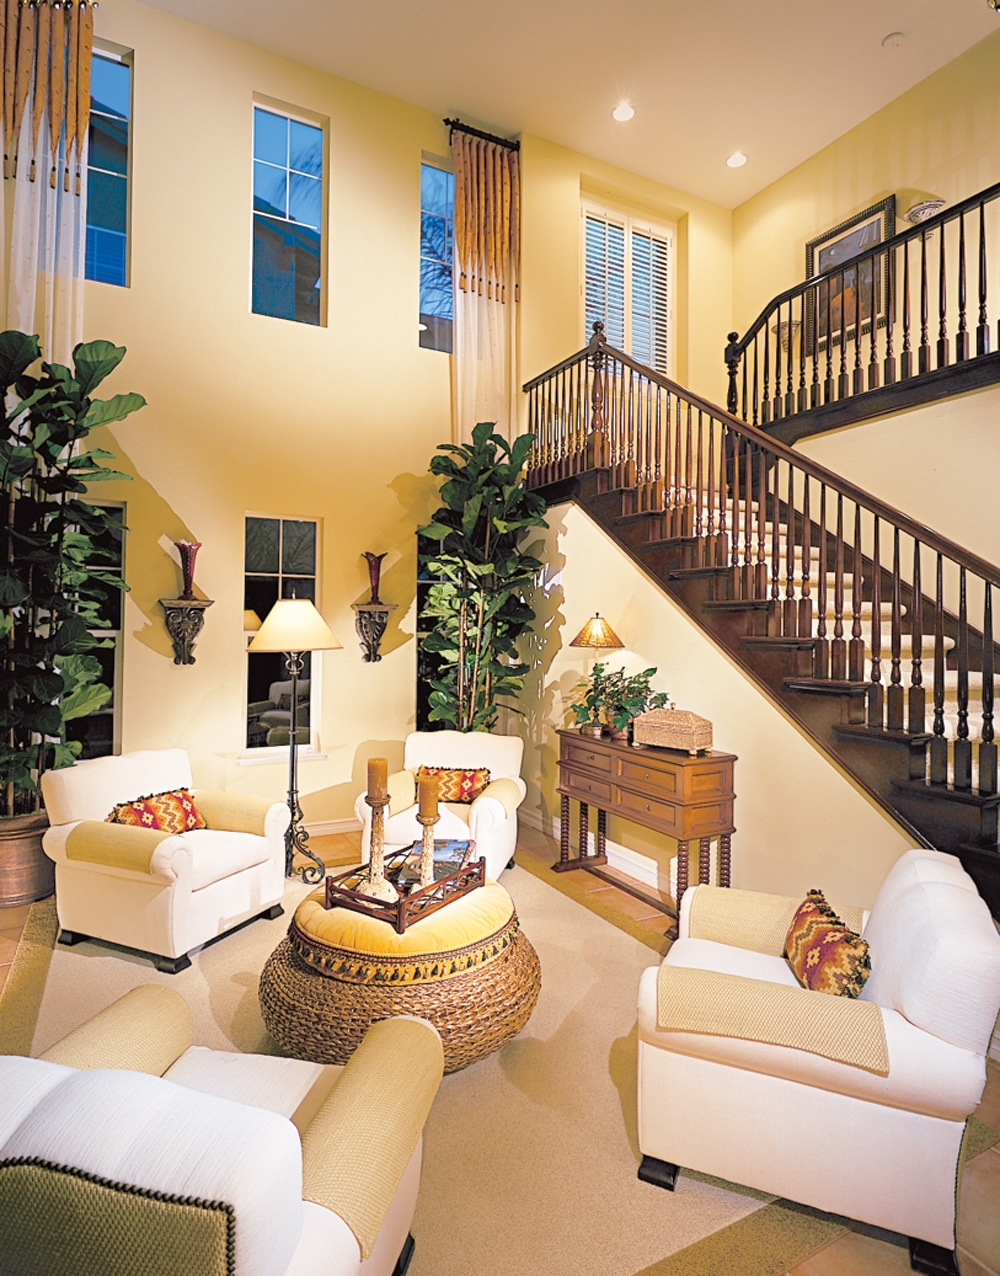 Not A Fan Of Stairs, But I Don't Think I'd Mind Them If The Rest Pertaining To Well Known High Ceiling Wall Accents (View 13 of 15)